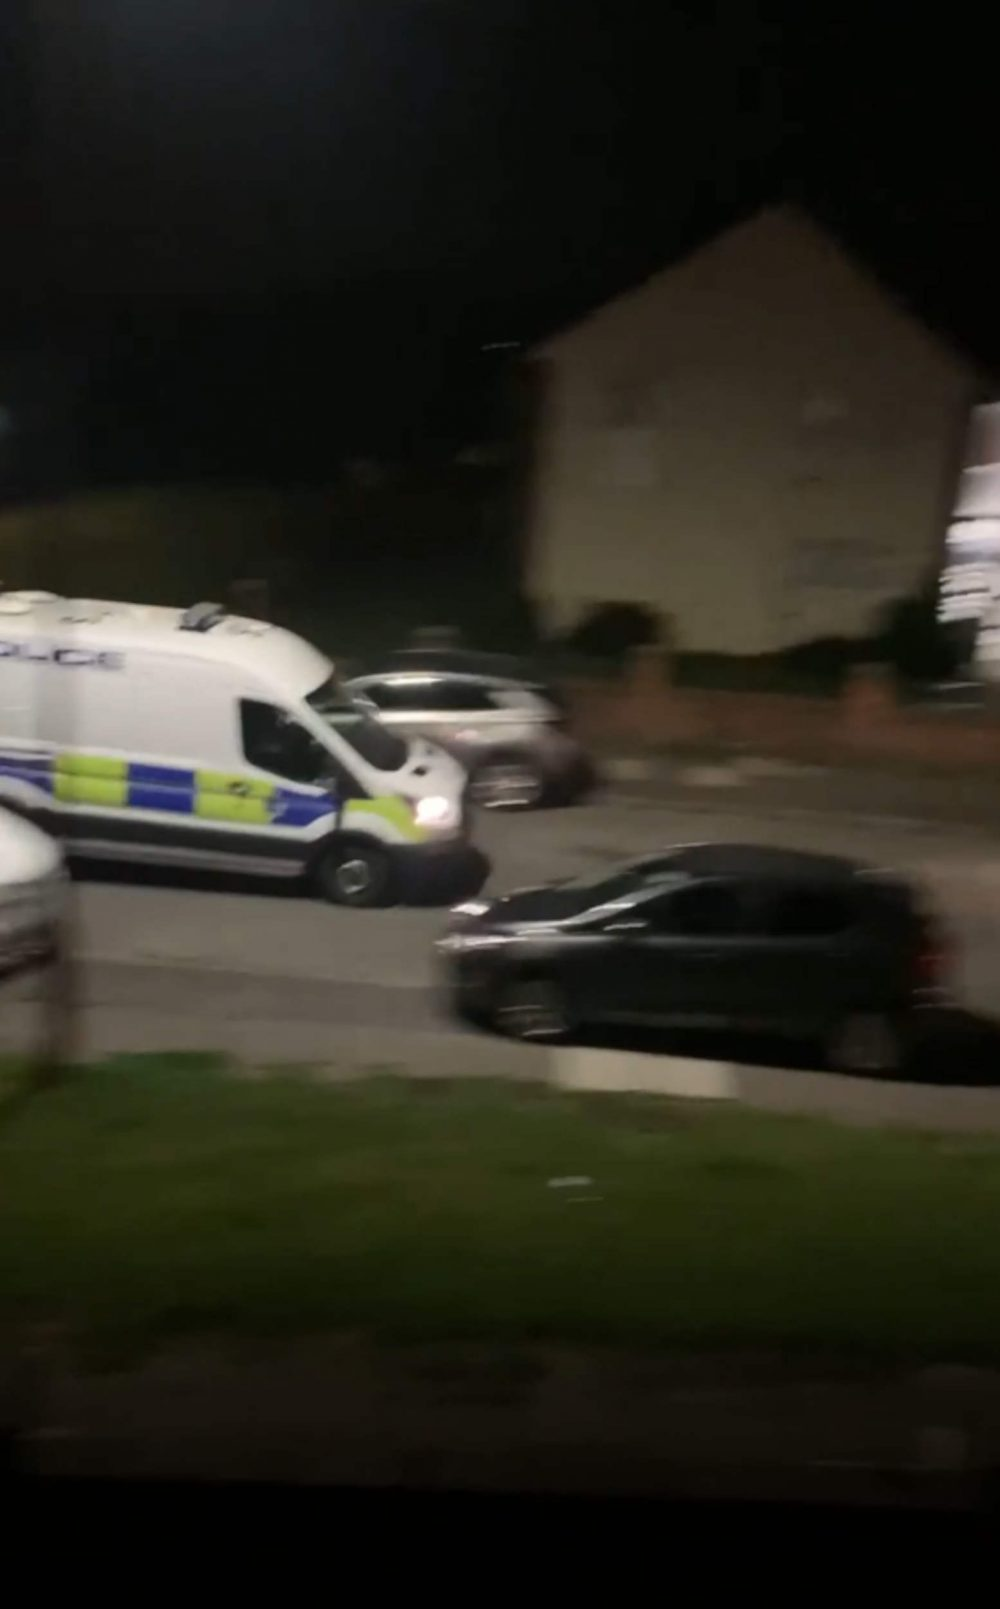 The police pursue the van | Police News UK